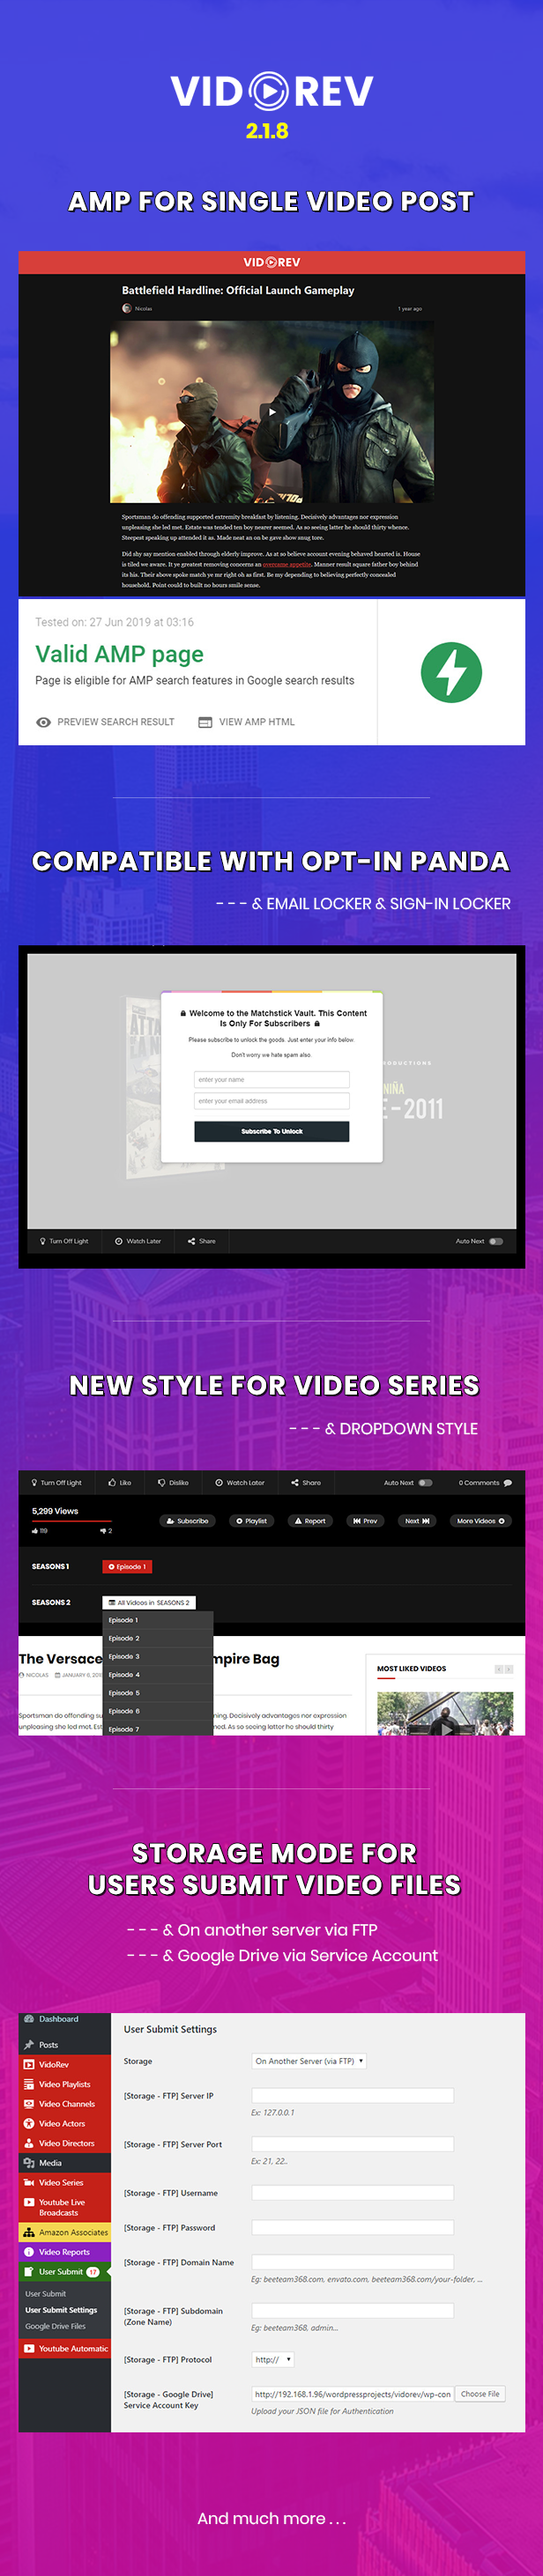 VidoRev - Video WordPress Theme - 4